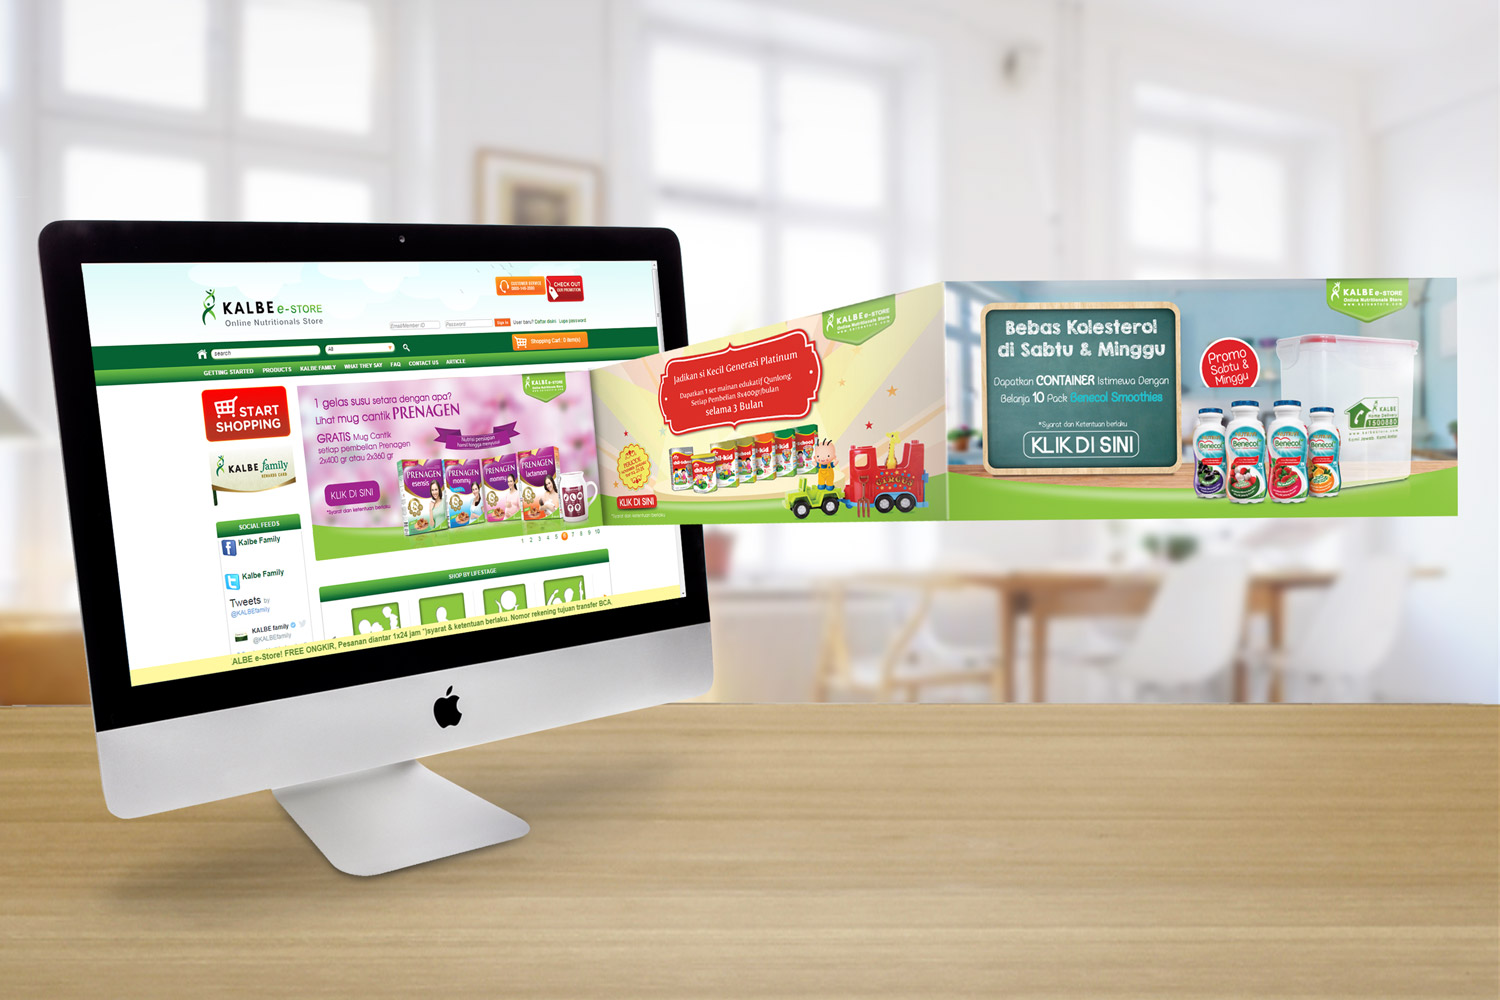 Desain Web Banner Kalbe E Store The Hummingbird Design